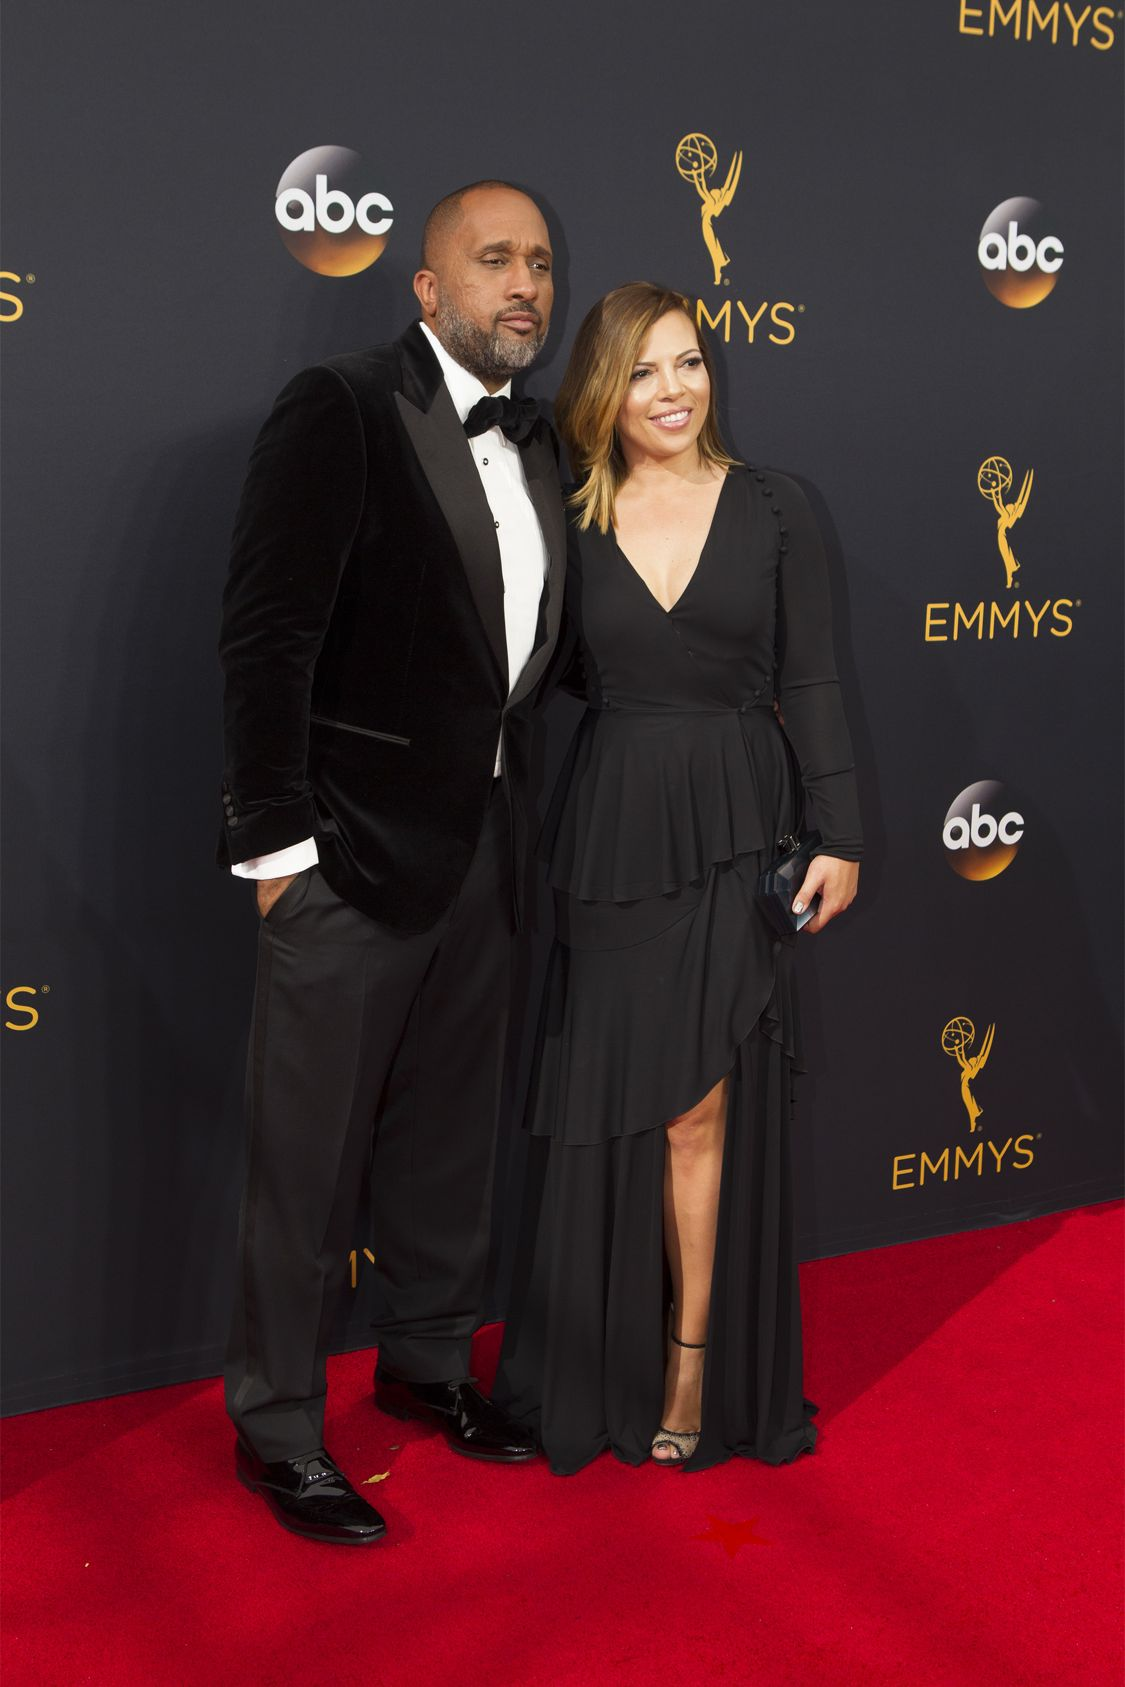 """THE 68TH EMMY(r) AWARDS - """"The 68th Emmy Awards"""" broadcasts live from The Microsoft Theater in Los Angeles, Sunday, September 18 (7:00-11:00 p.m. EDT/4:00-8:00 p.m. PDT), on ABC and is hosted by Jimmy Kimmel. (ABC/Rick Rowell) KENYA BARRIS"""